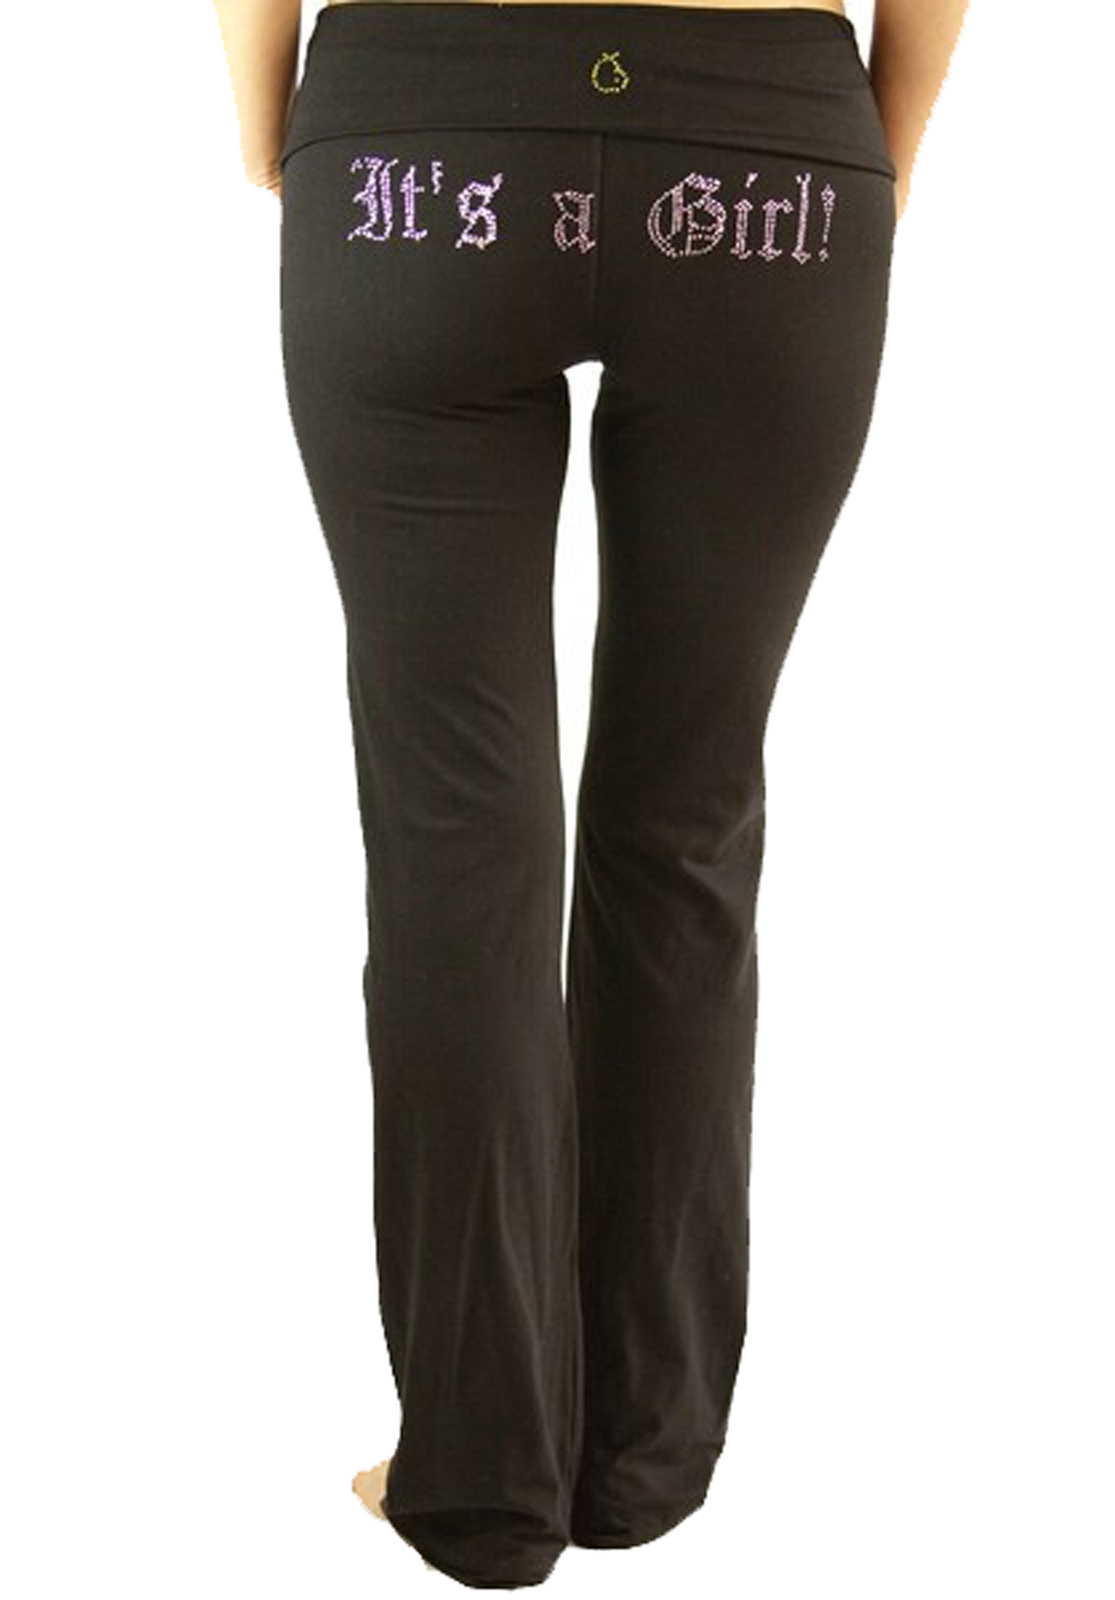 PLus Size Maternity Yoga Pant - Online Exclusive